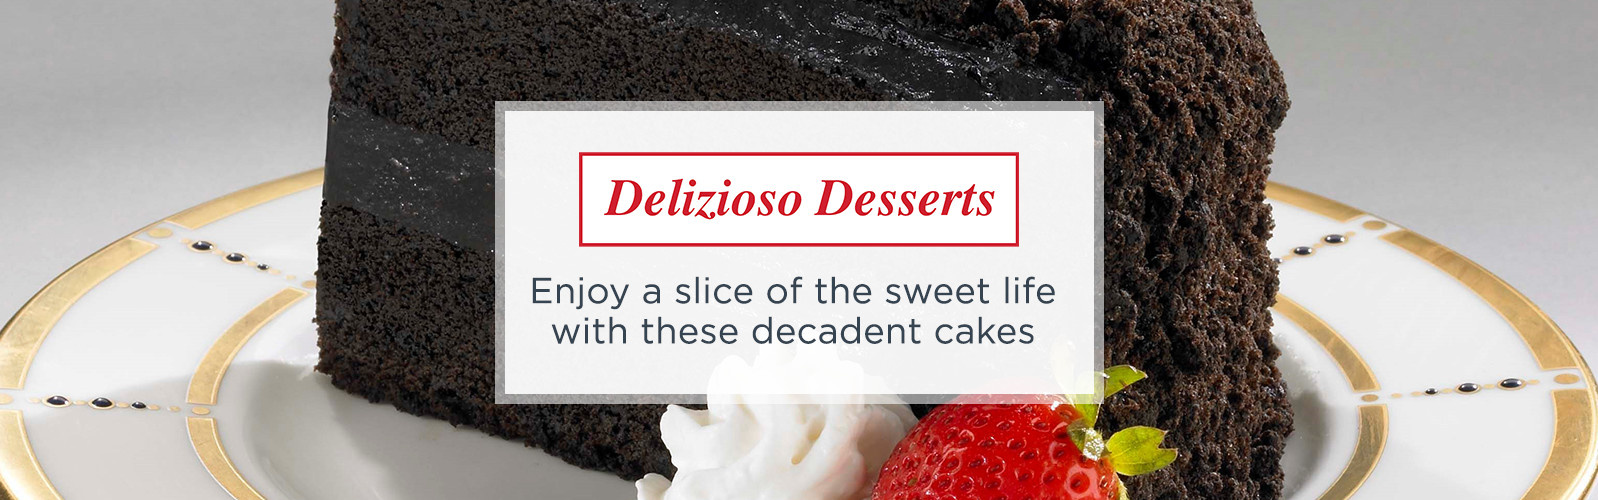 Delizioso Desserts  -- Enjoy a slice of the sweet life with these decadent cakes